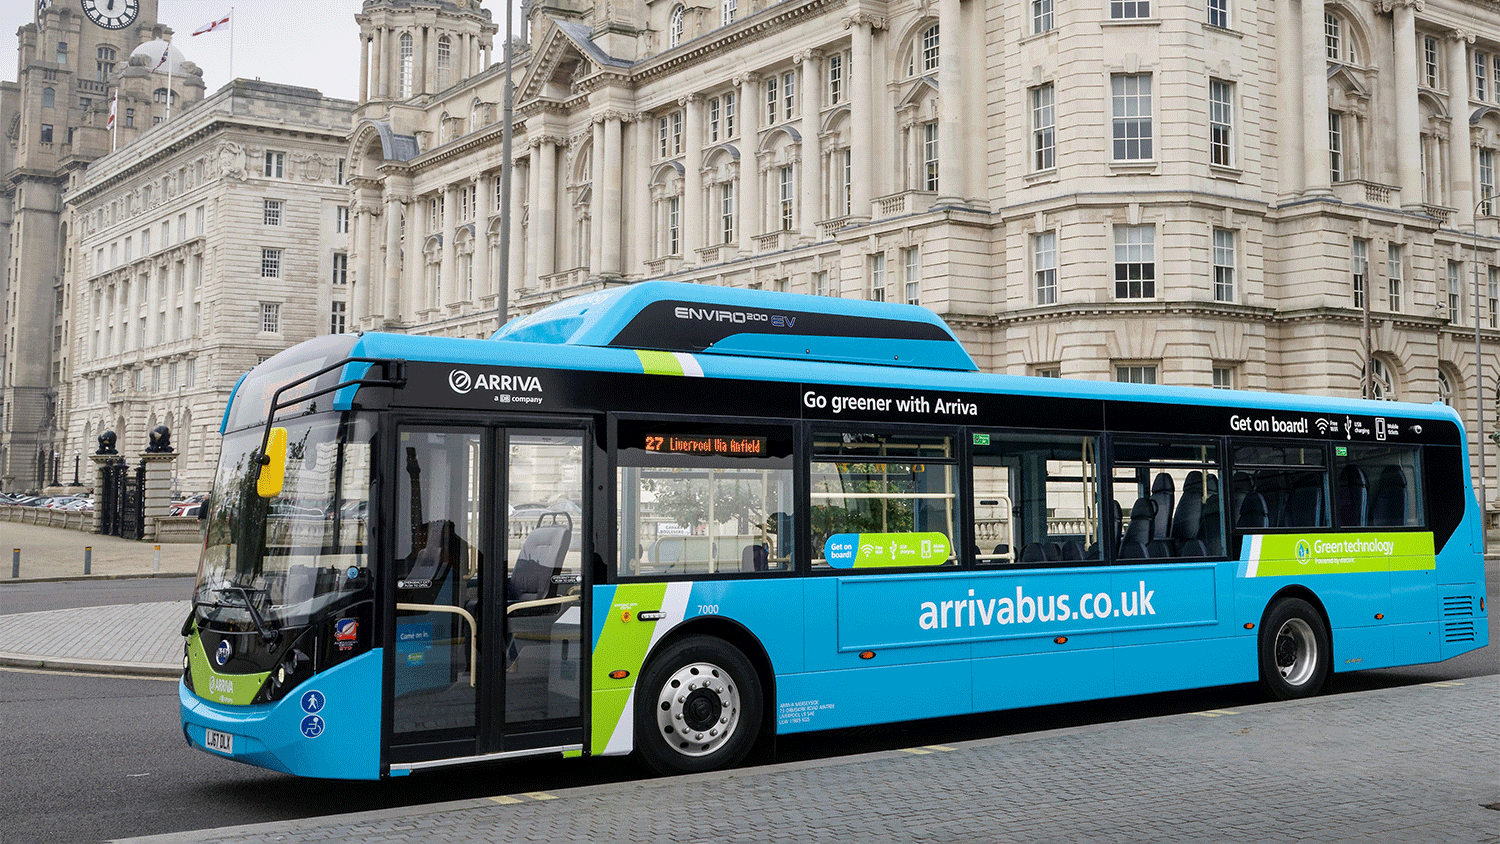 A blue bus arrives outside an old building in Liverpool